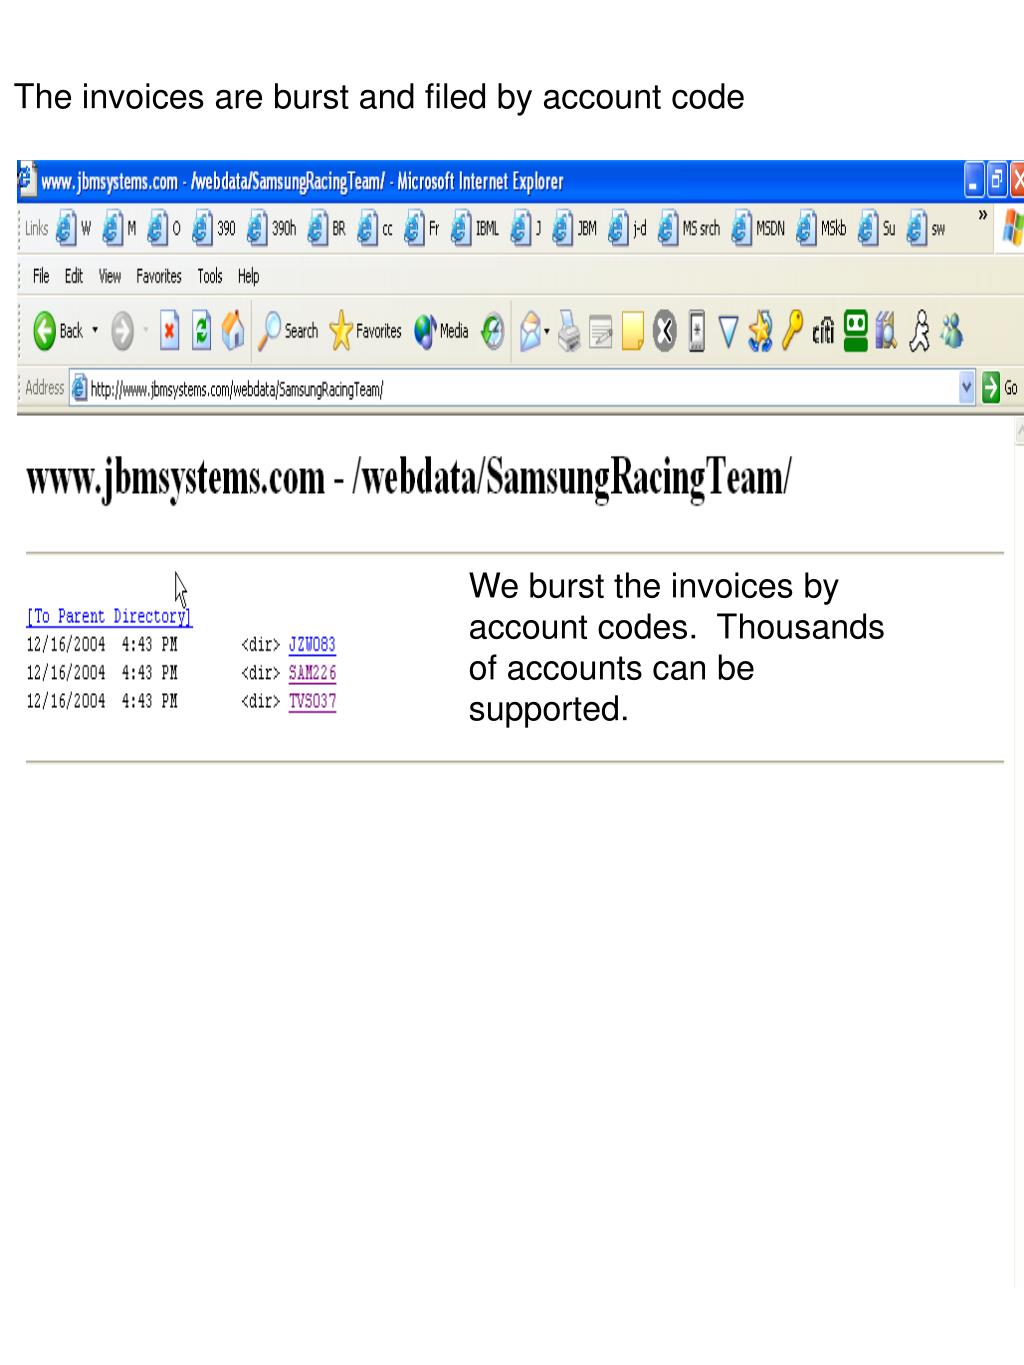 The invoices are burst and filed by account code